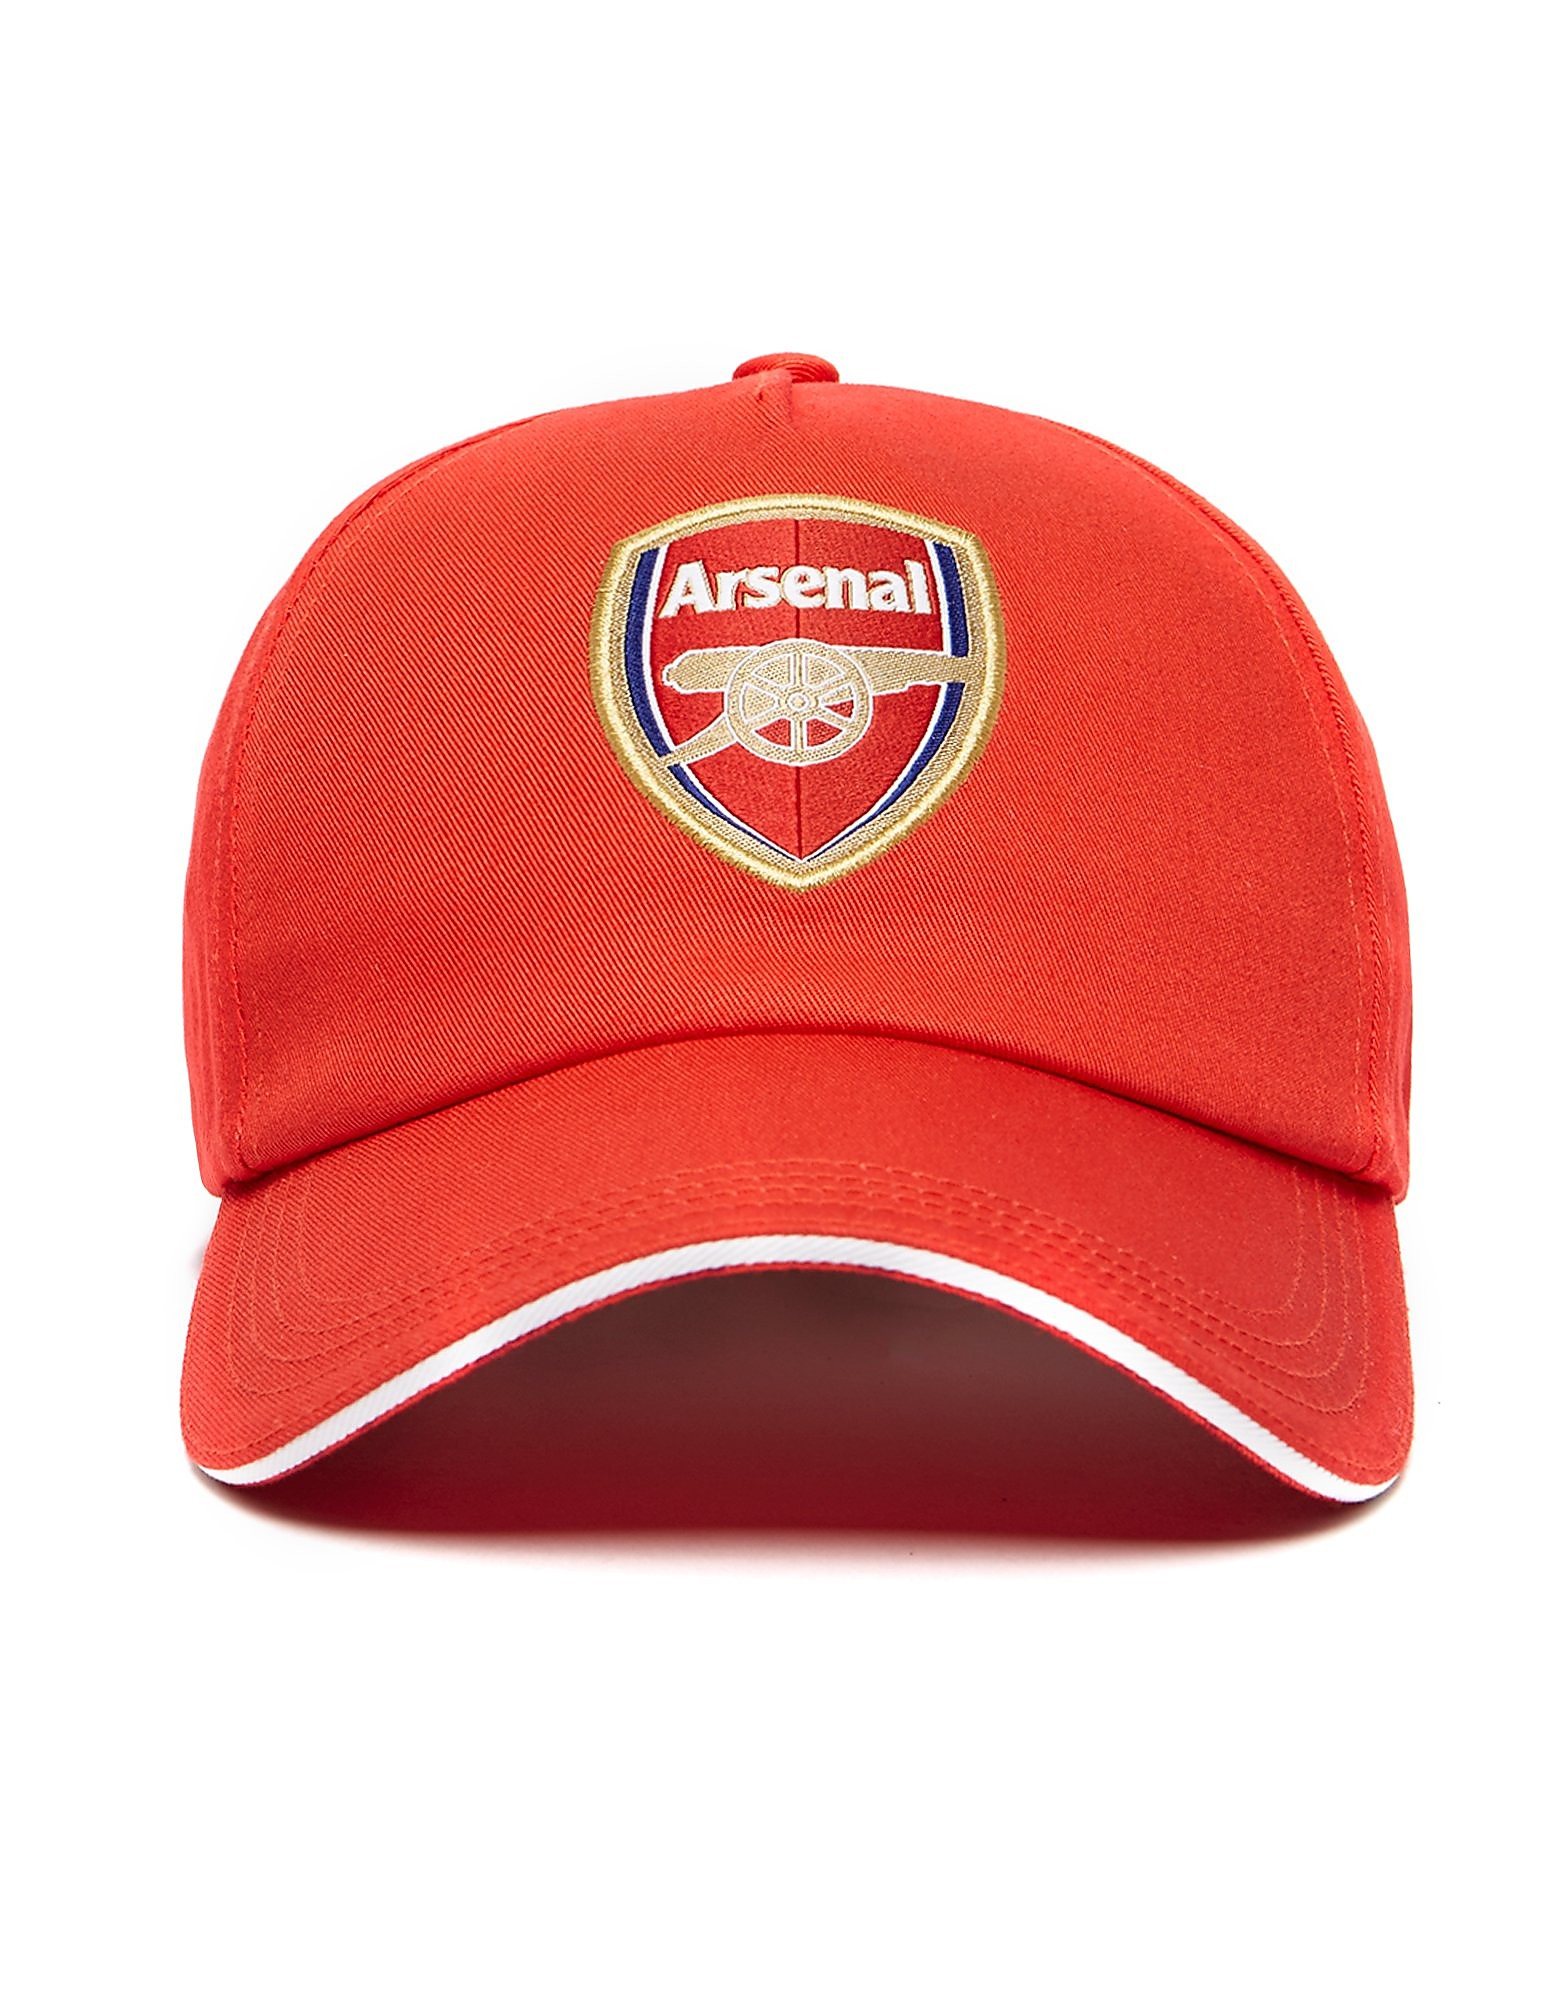 PUMA gorra Arsenal